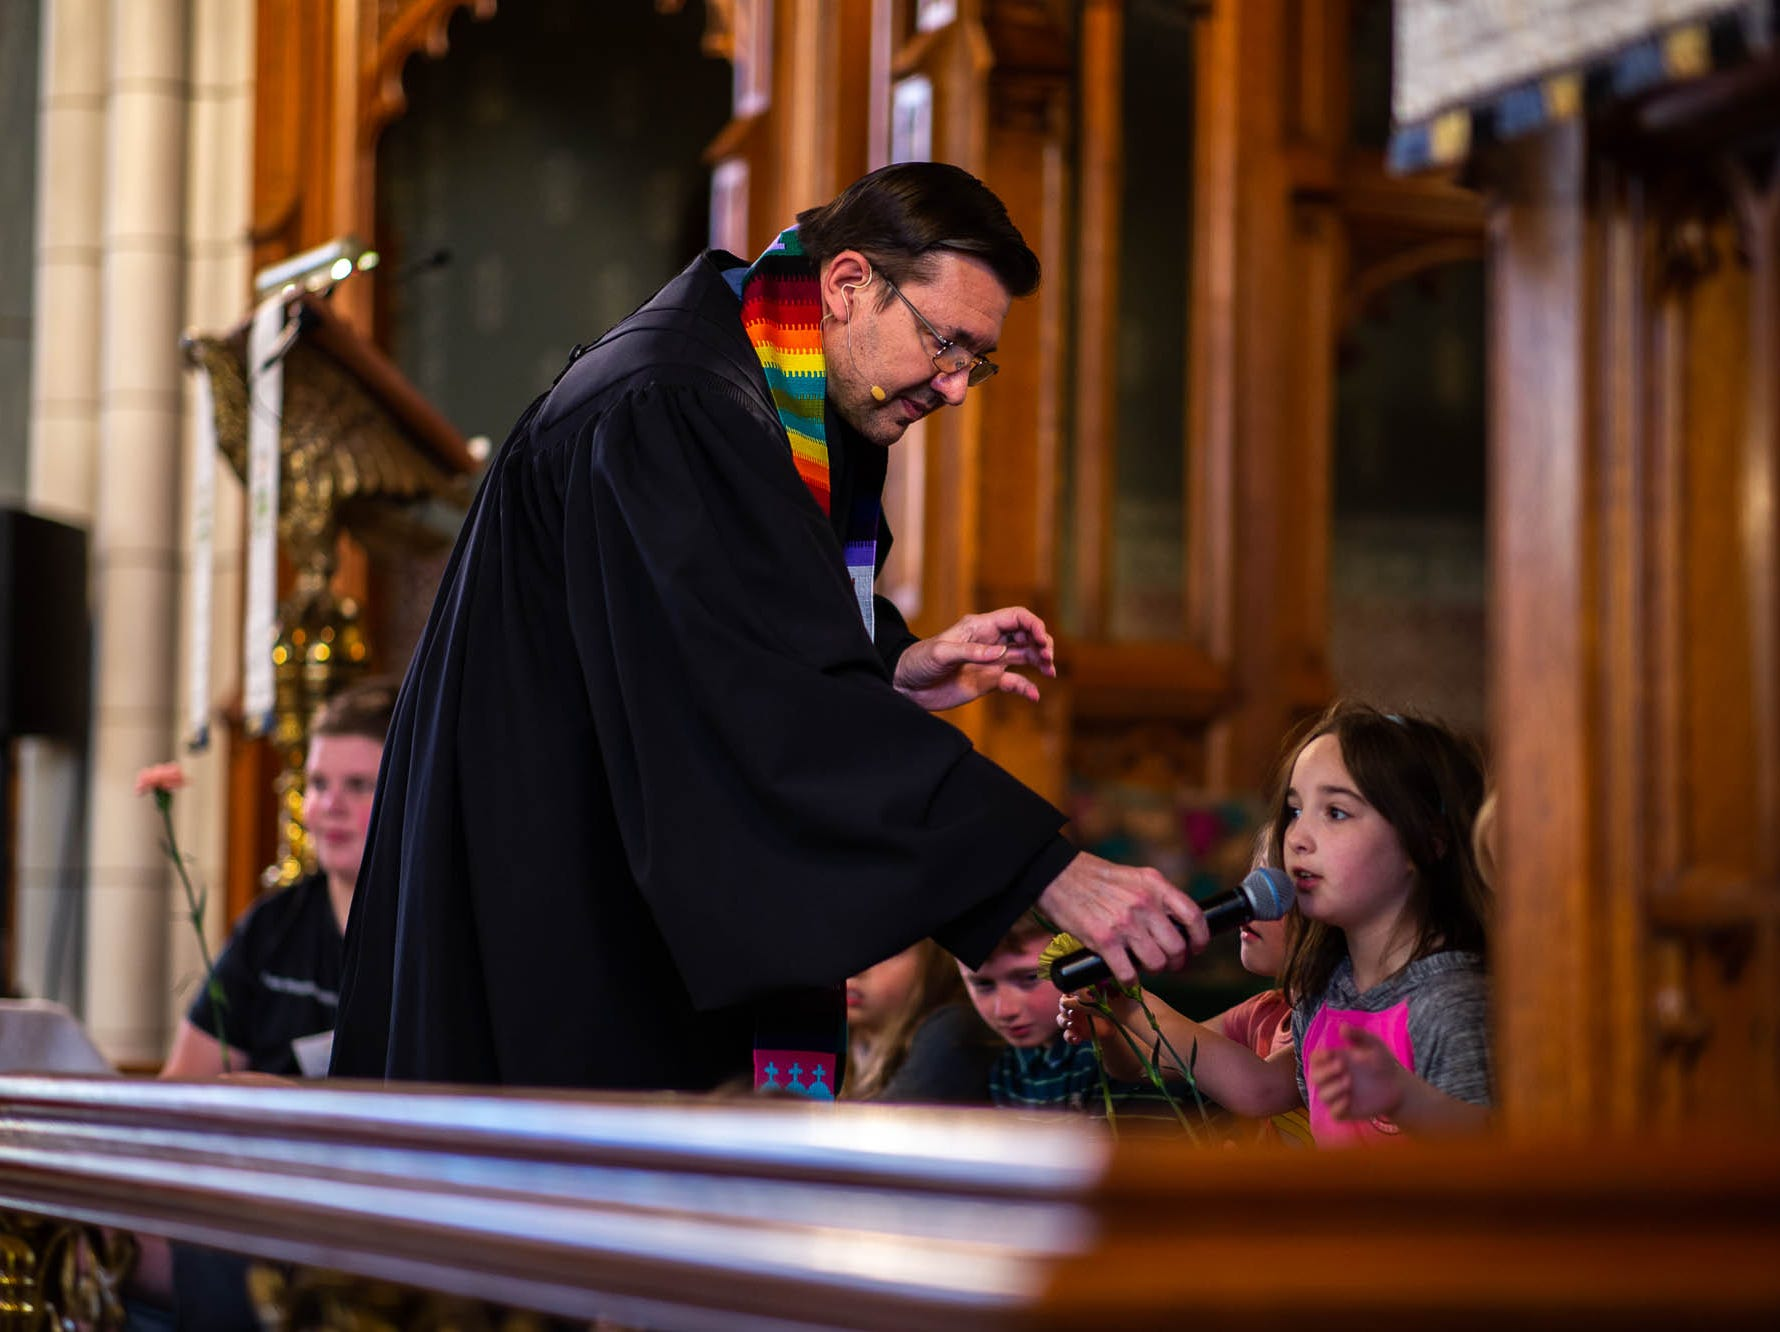 Reverend Russell Clark speaks with a child during a diversity service at the Emmanuel United Church of Christ, Sunday, April 7, 2019, in Hanover. Reverend Clark is the first openly gay pastor at the church.